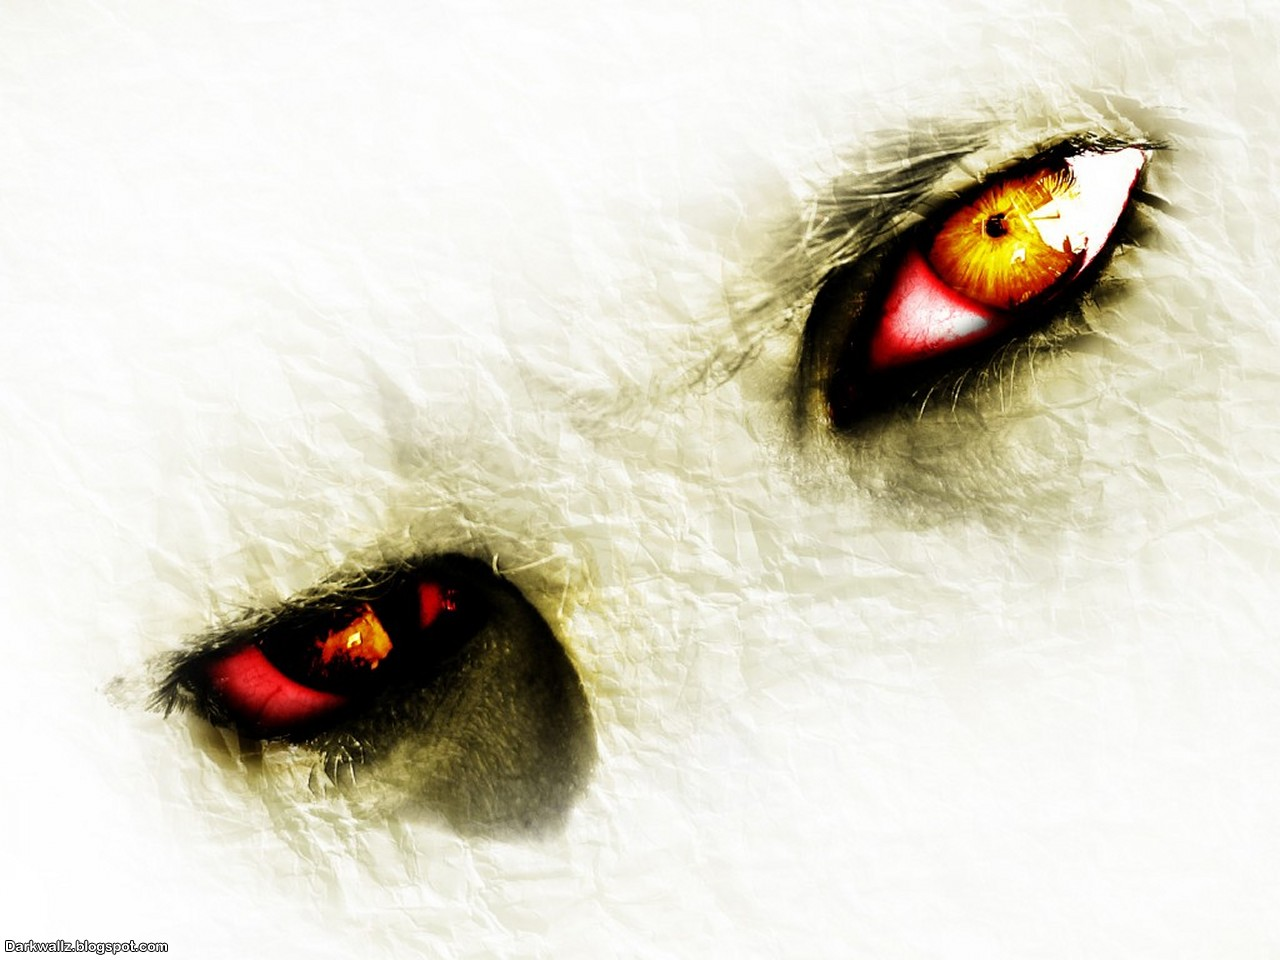 Scary Eyes Wallpapers 01 | Dark Wallpaper Download